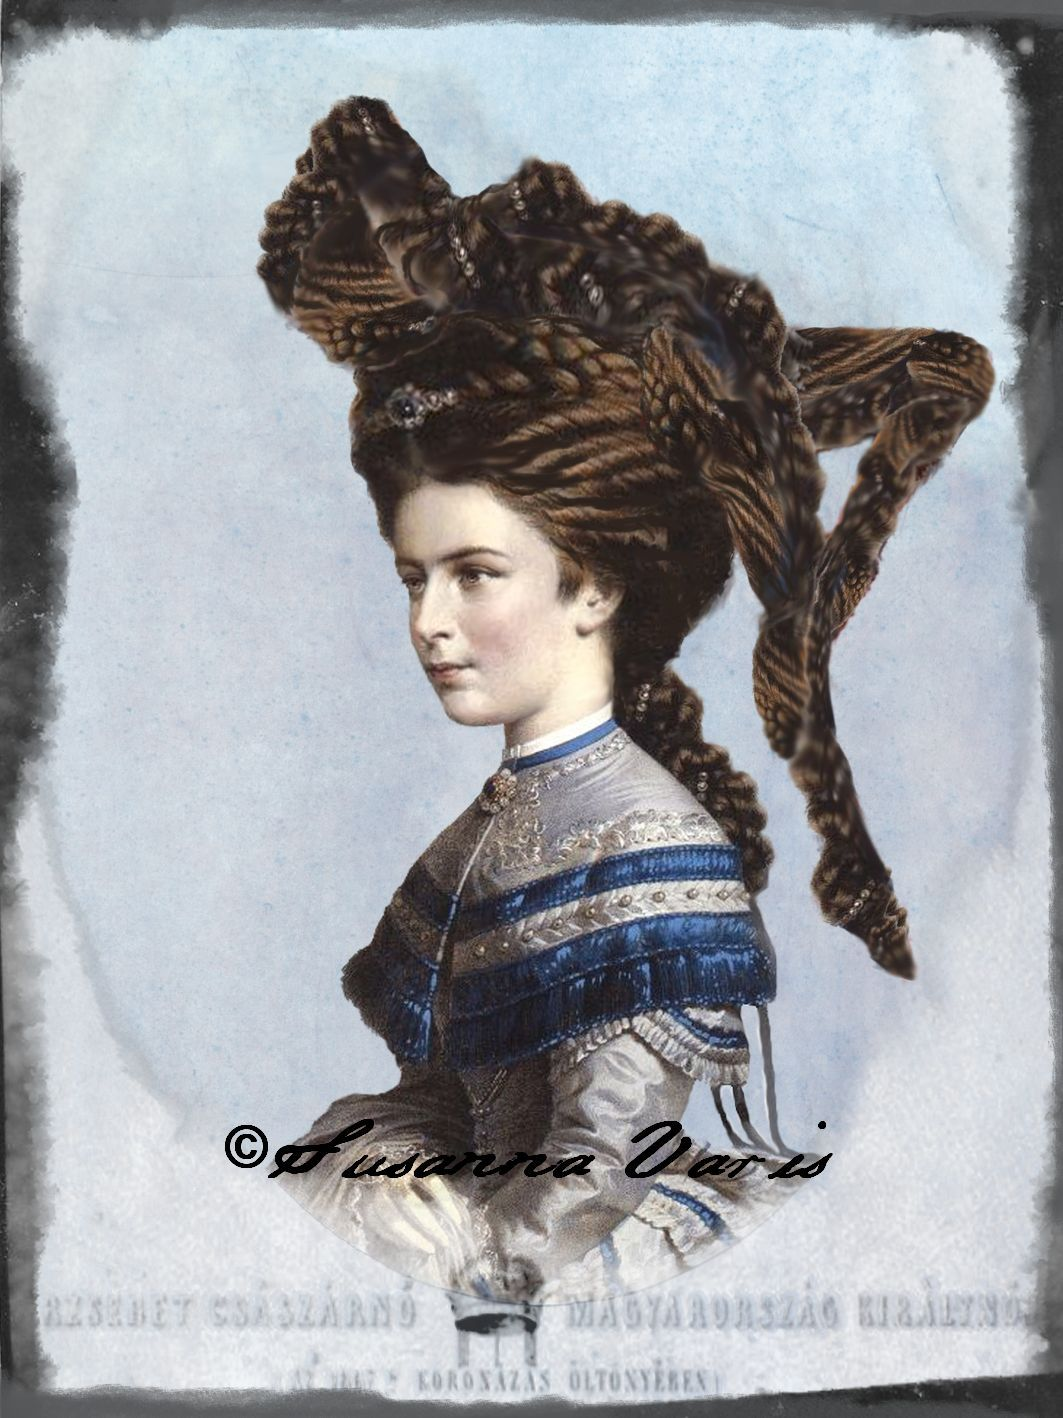 Body of Hair (The Tale of the Empress series) digital assemblage, 2015 Susanna Varis  Follow the Tale of the Empress here: https://www.facebook.com/media/set/?set=a.1088066074540071.1073741842.166258563387498&type=3